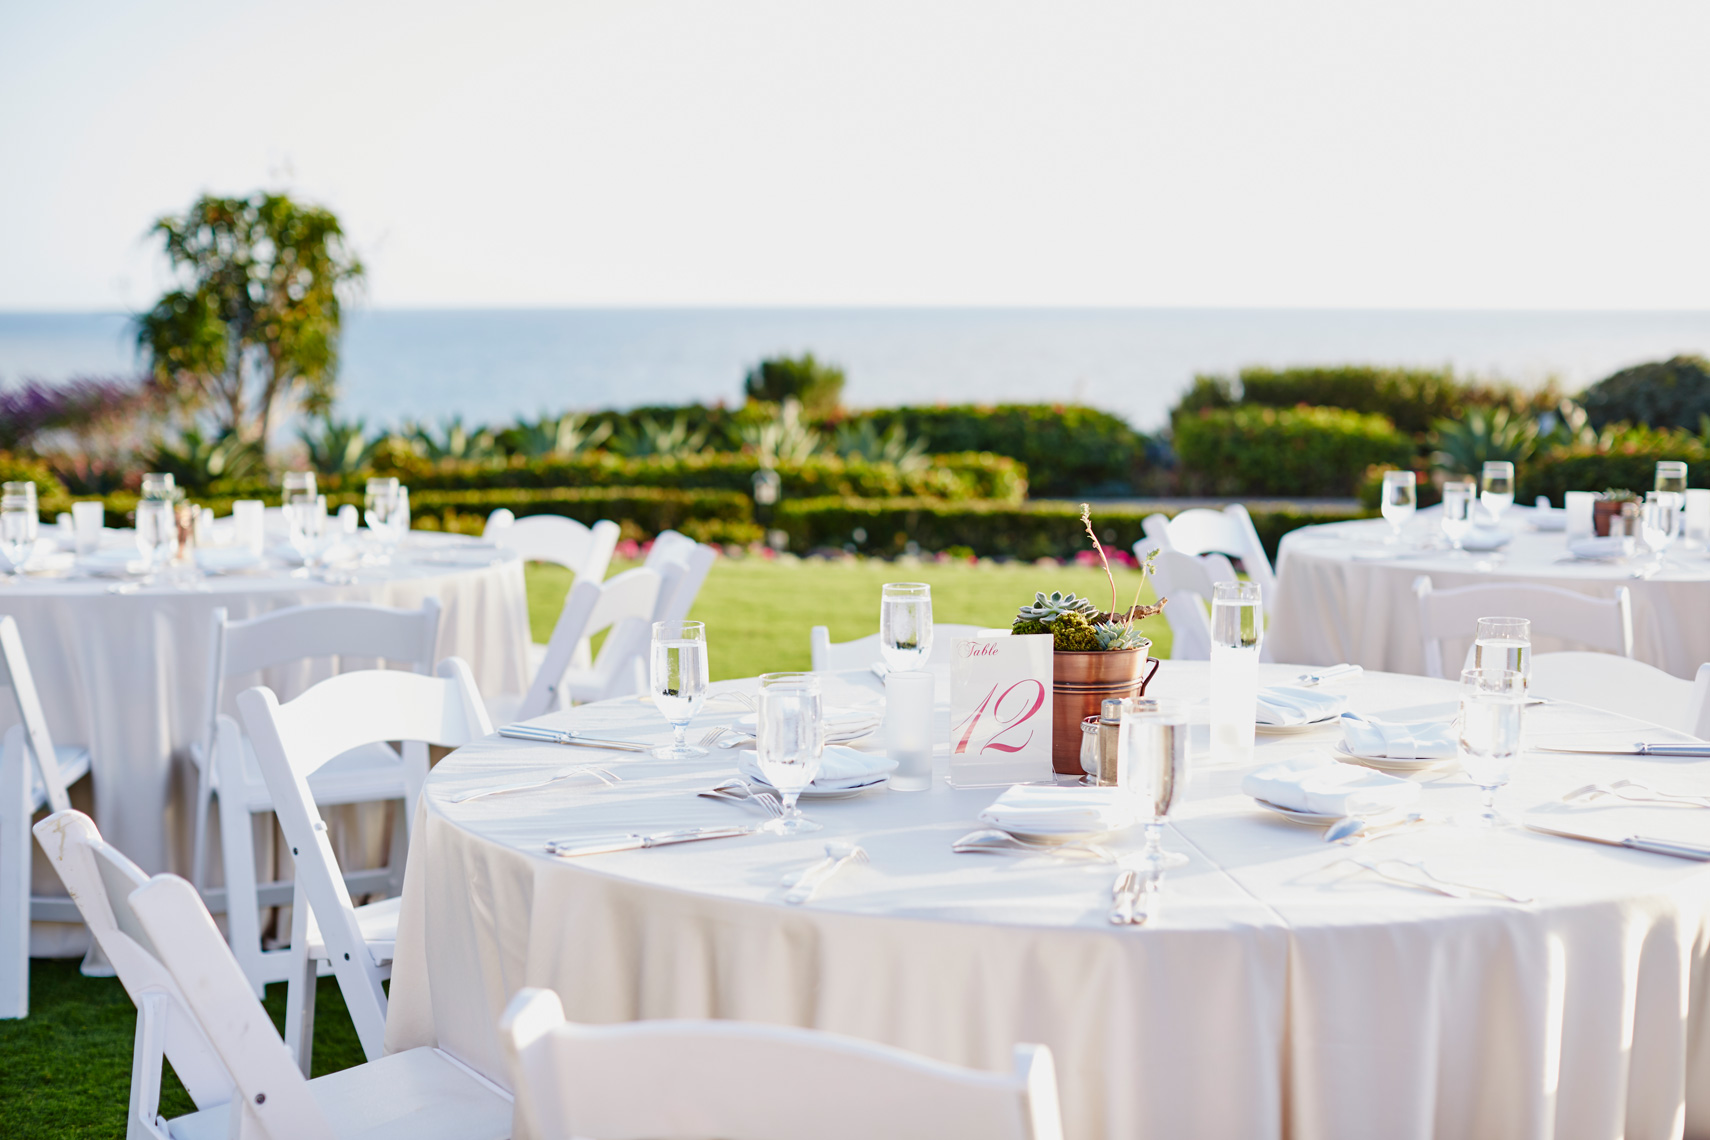 Table decor for Corporate event at Montage Resort in Laguna Beach, California